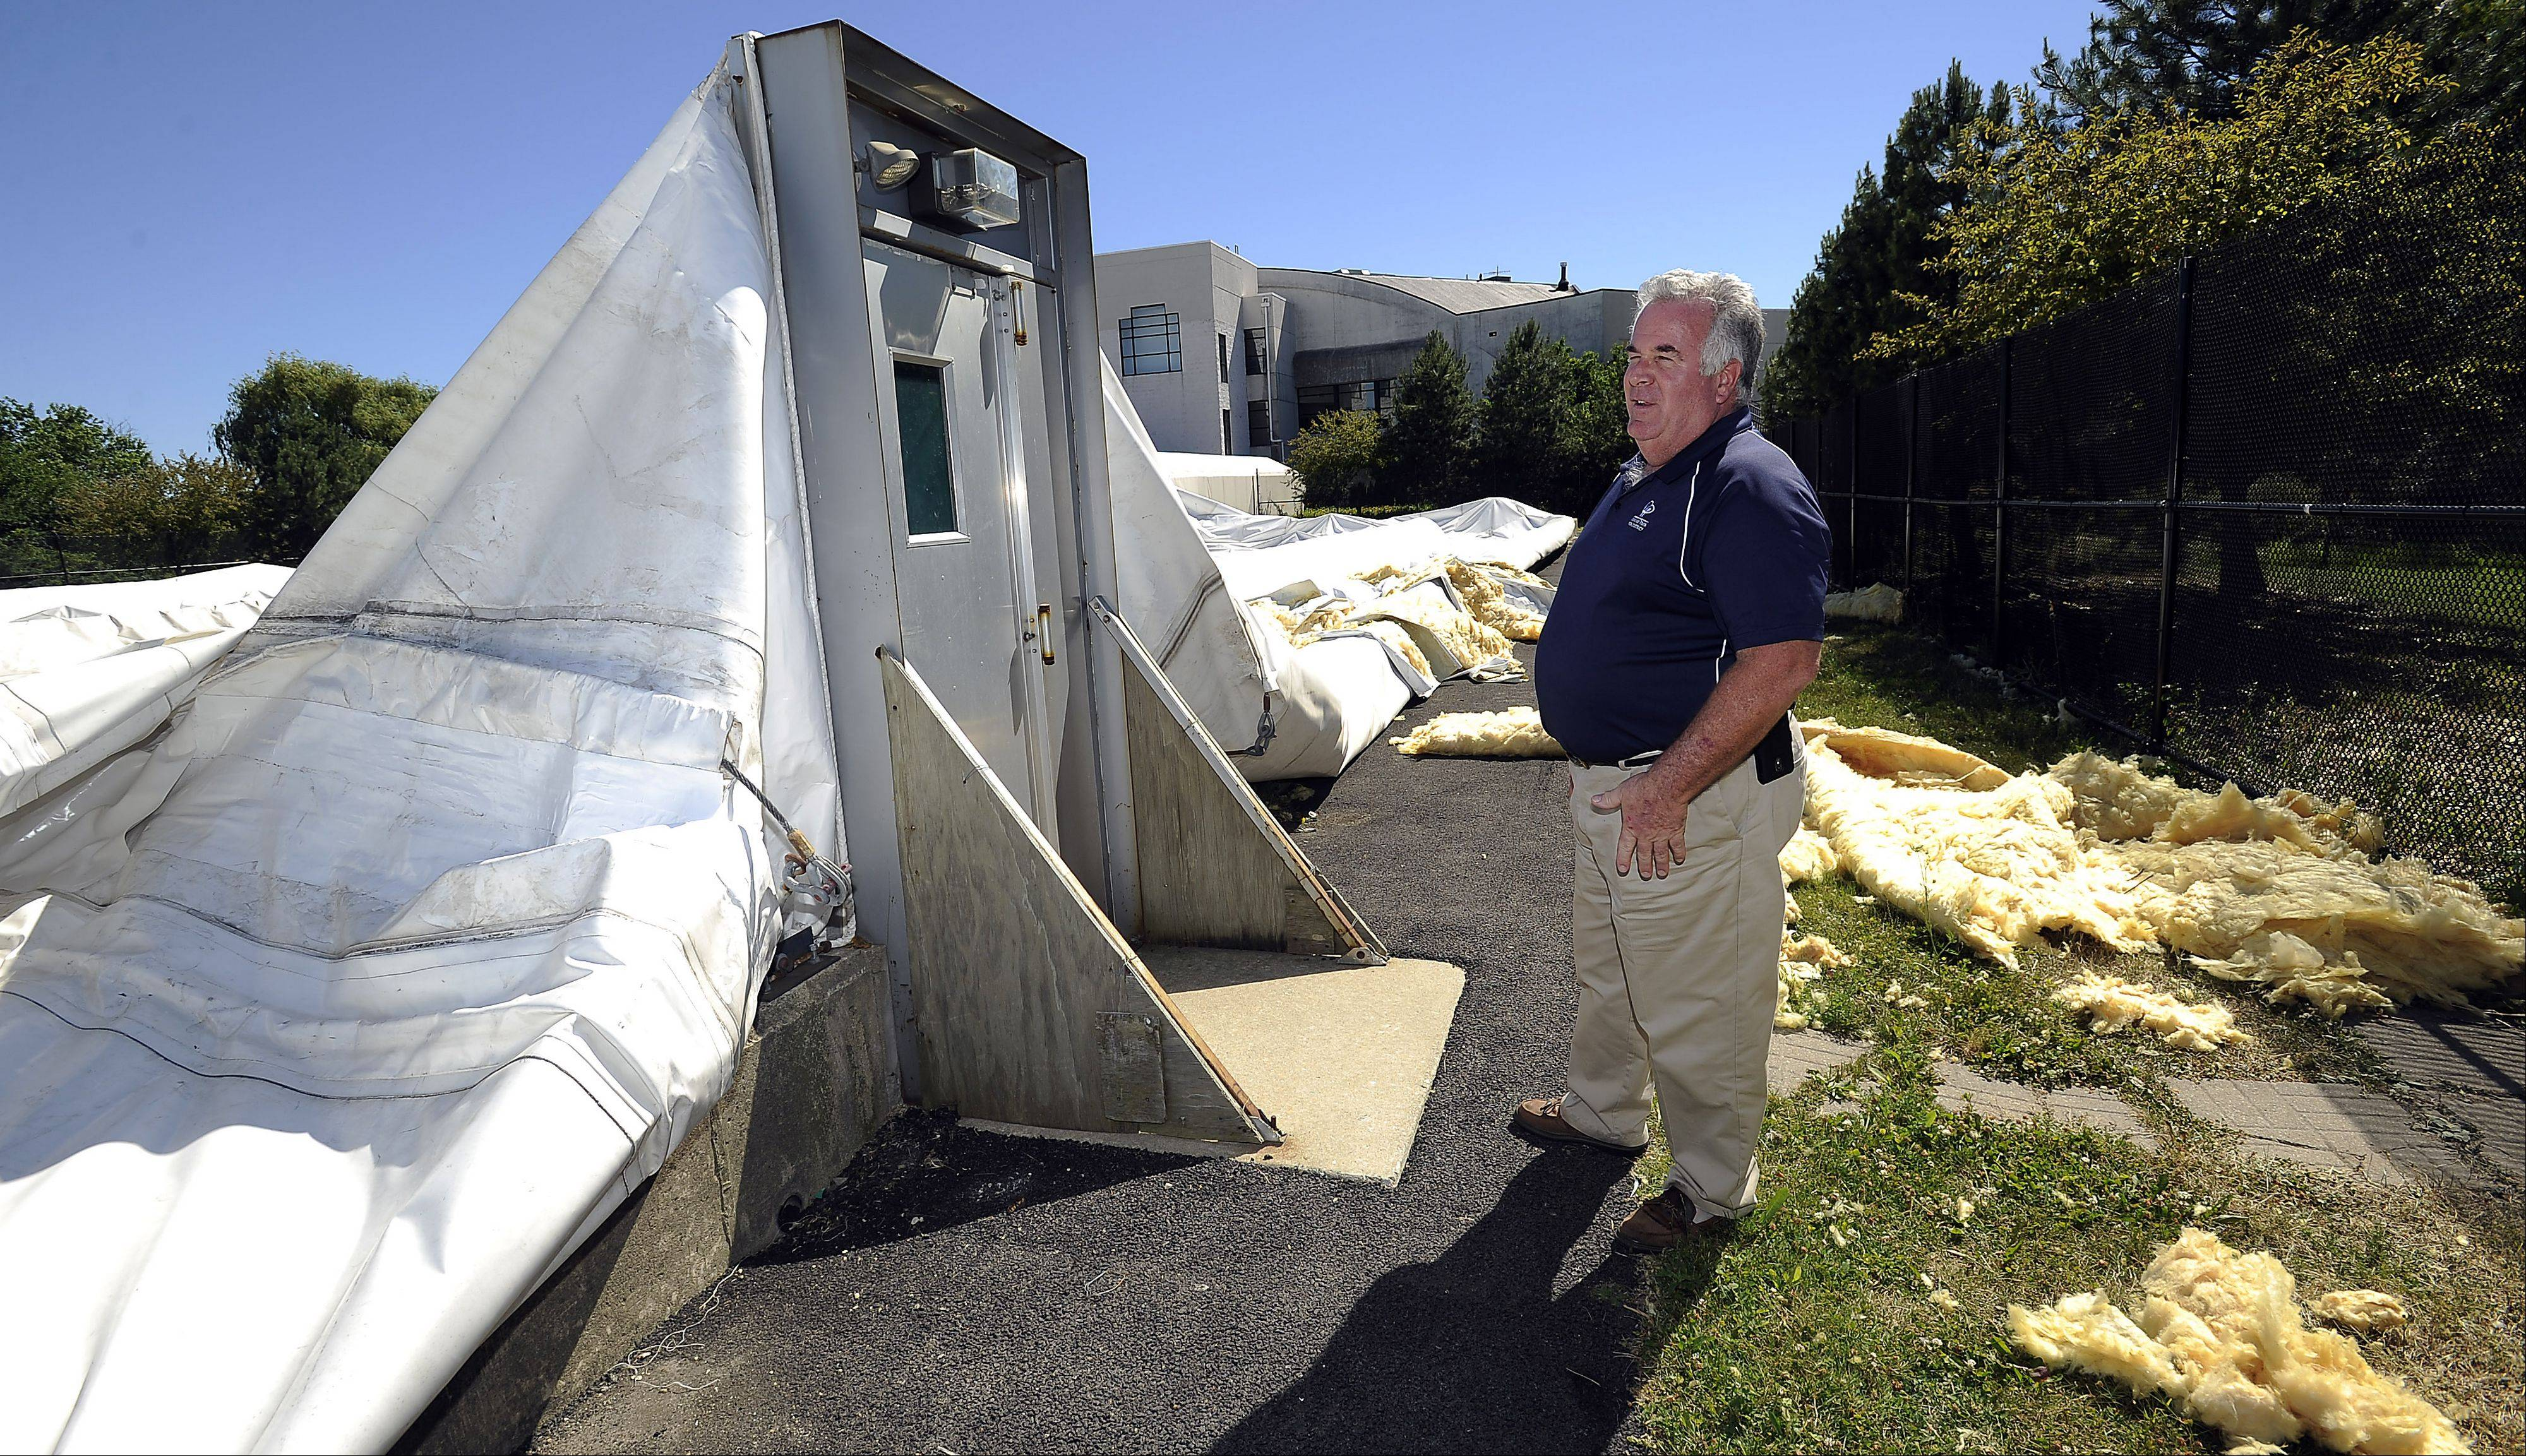 Hanover Park Park District's Bob O'Brien, superintendent of parks and planning, stands at one of the doorways now blocked by the inflatable tennis dome that collapsed Sunday afternoon. None of the roughly 20 people inside was injured.